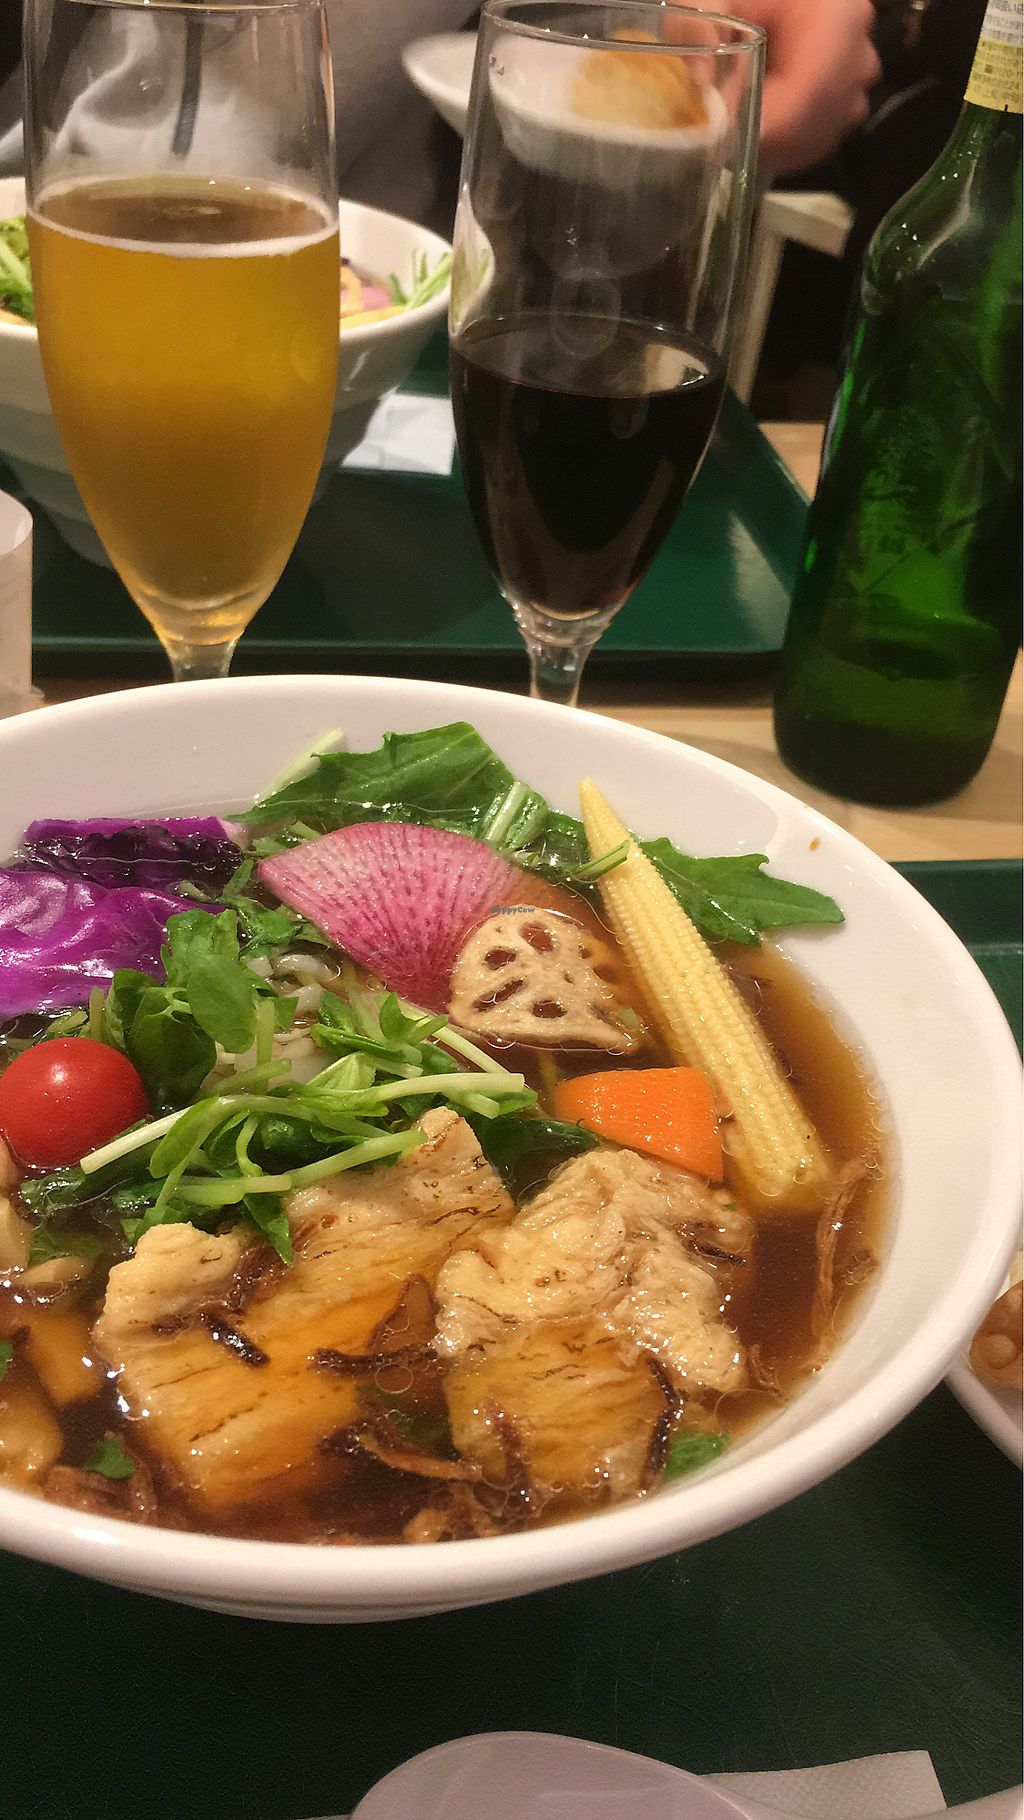 "Photo of T's Tantan - Tokyo Station  by <a href=""/members/profile/BecBarke"">BecBarke</a> <br/>Soooo good <br/> April 21, 2018  - <a href='/contact/abuse/image/29533/388832'>Report</a>"